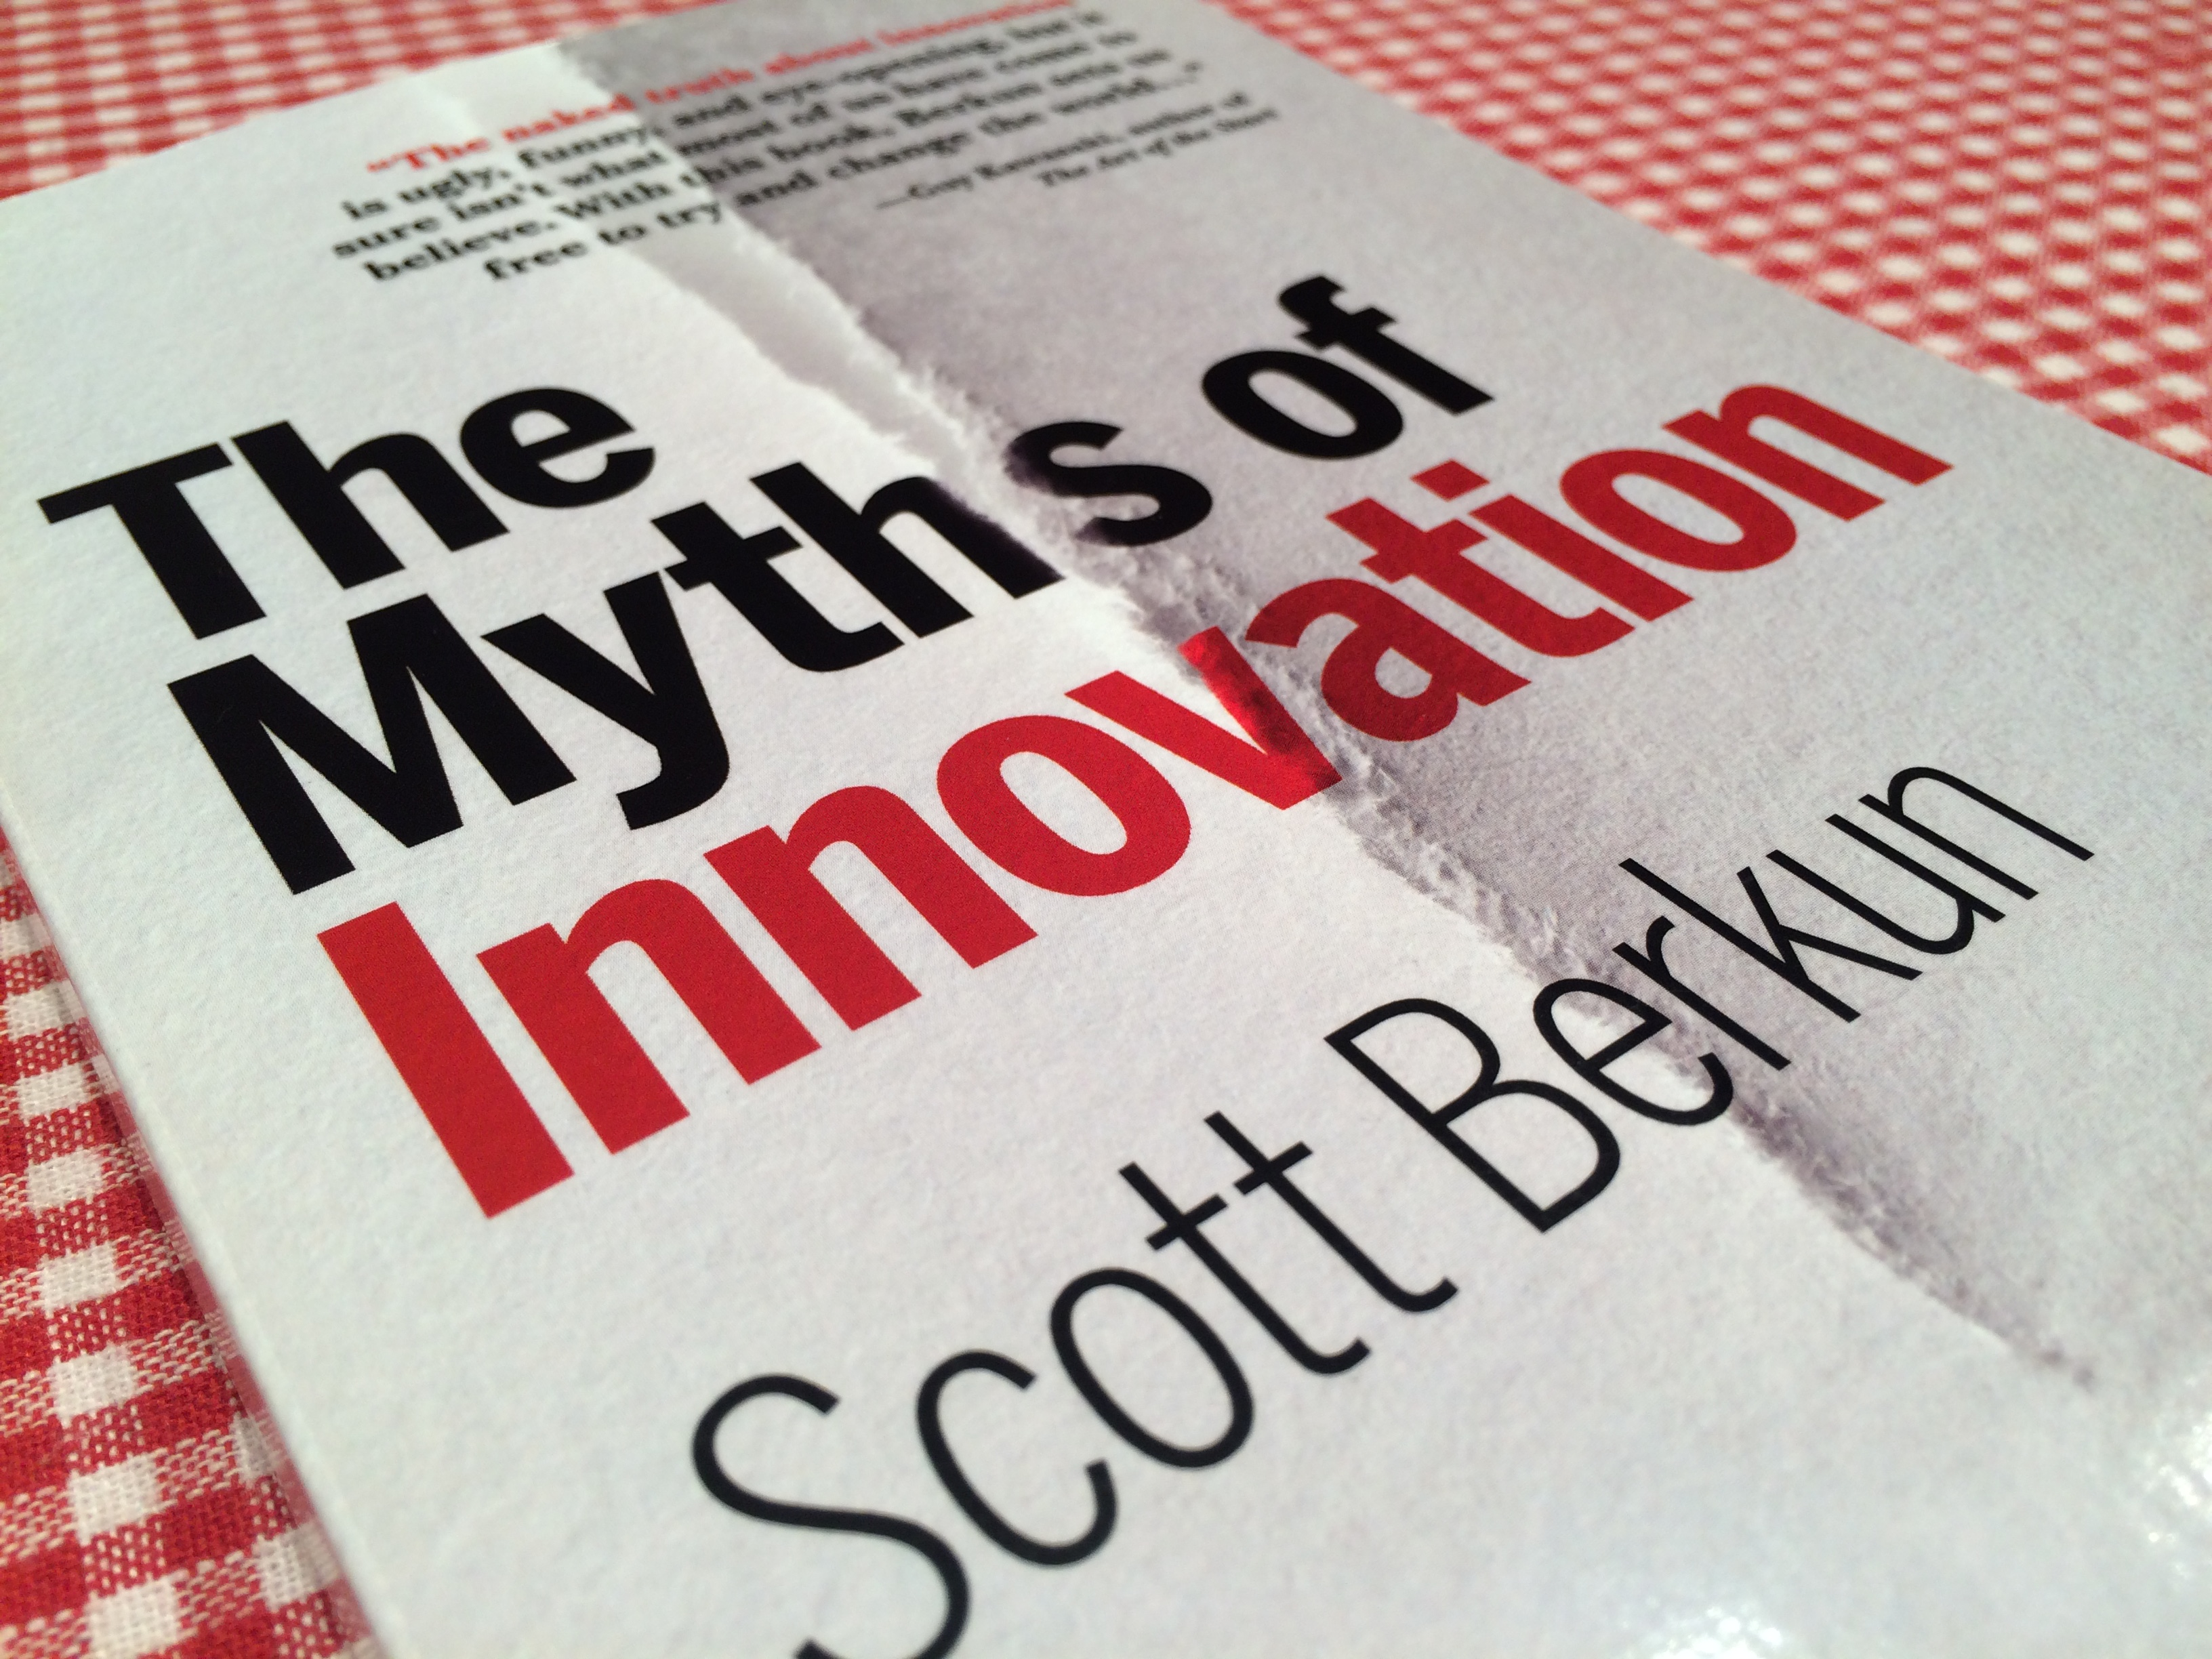 mgt-426-myths-of-innovation